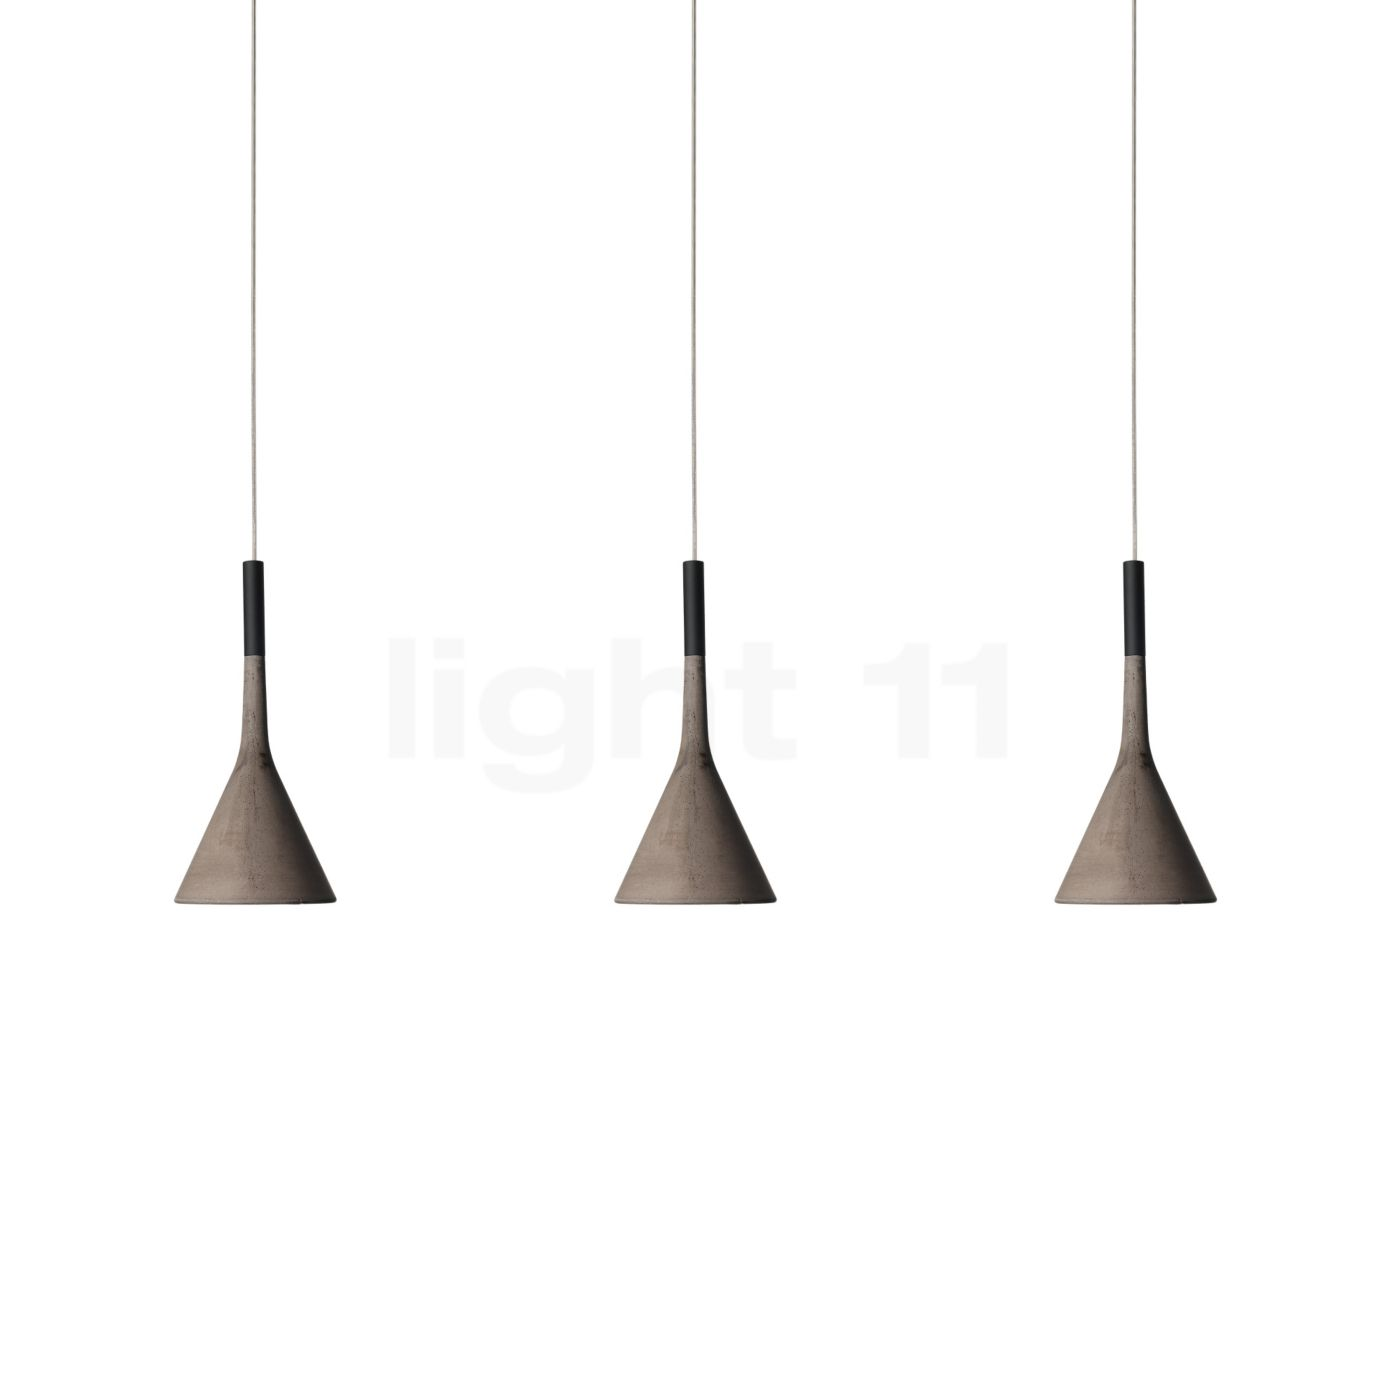 Foscarini Lights Buy Foscarini Aplomb 3 Lamps At Light11 Eu